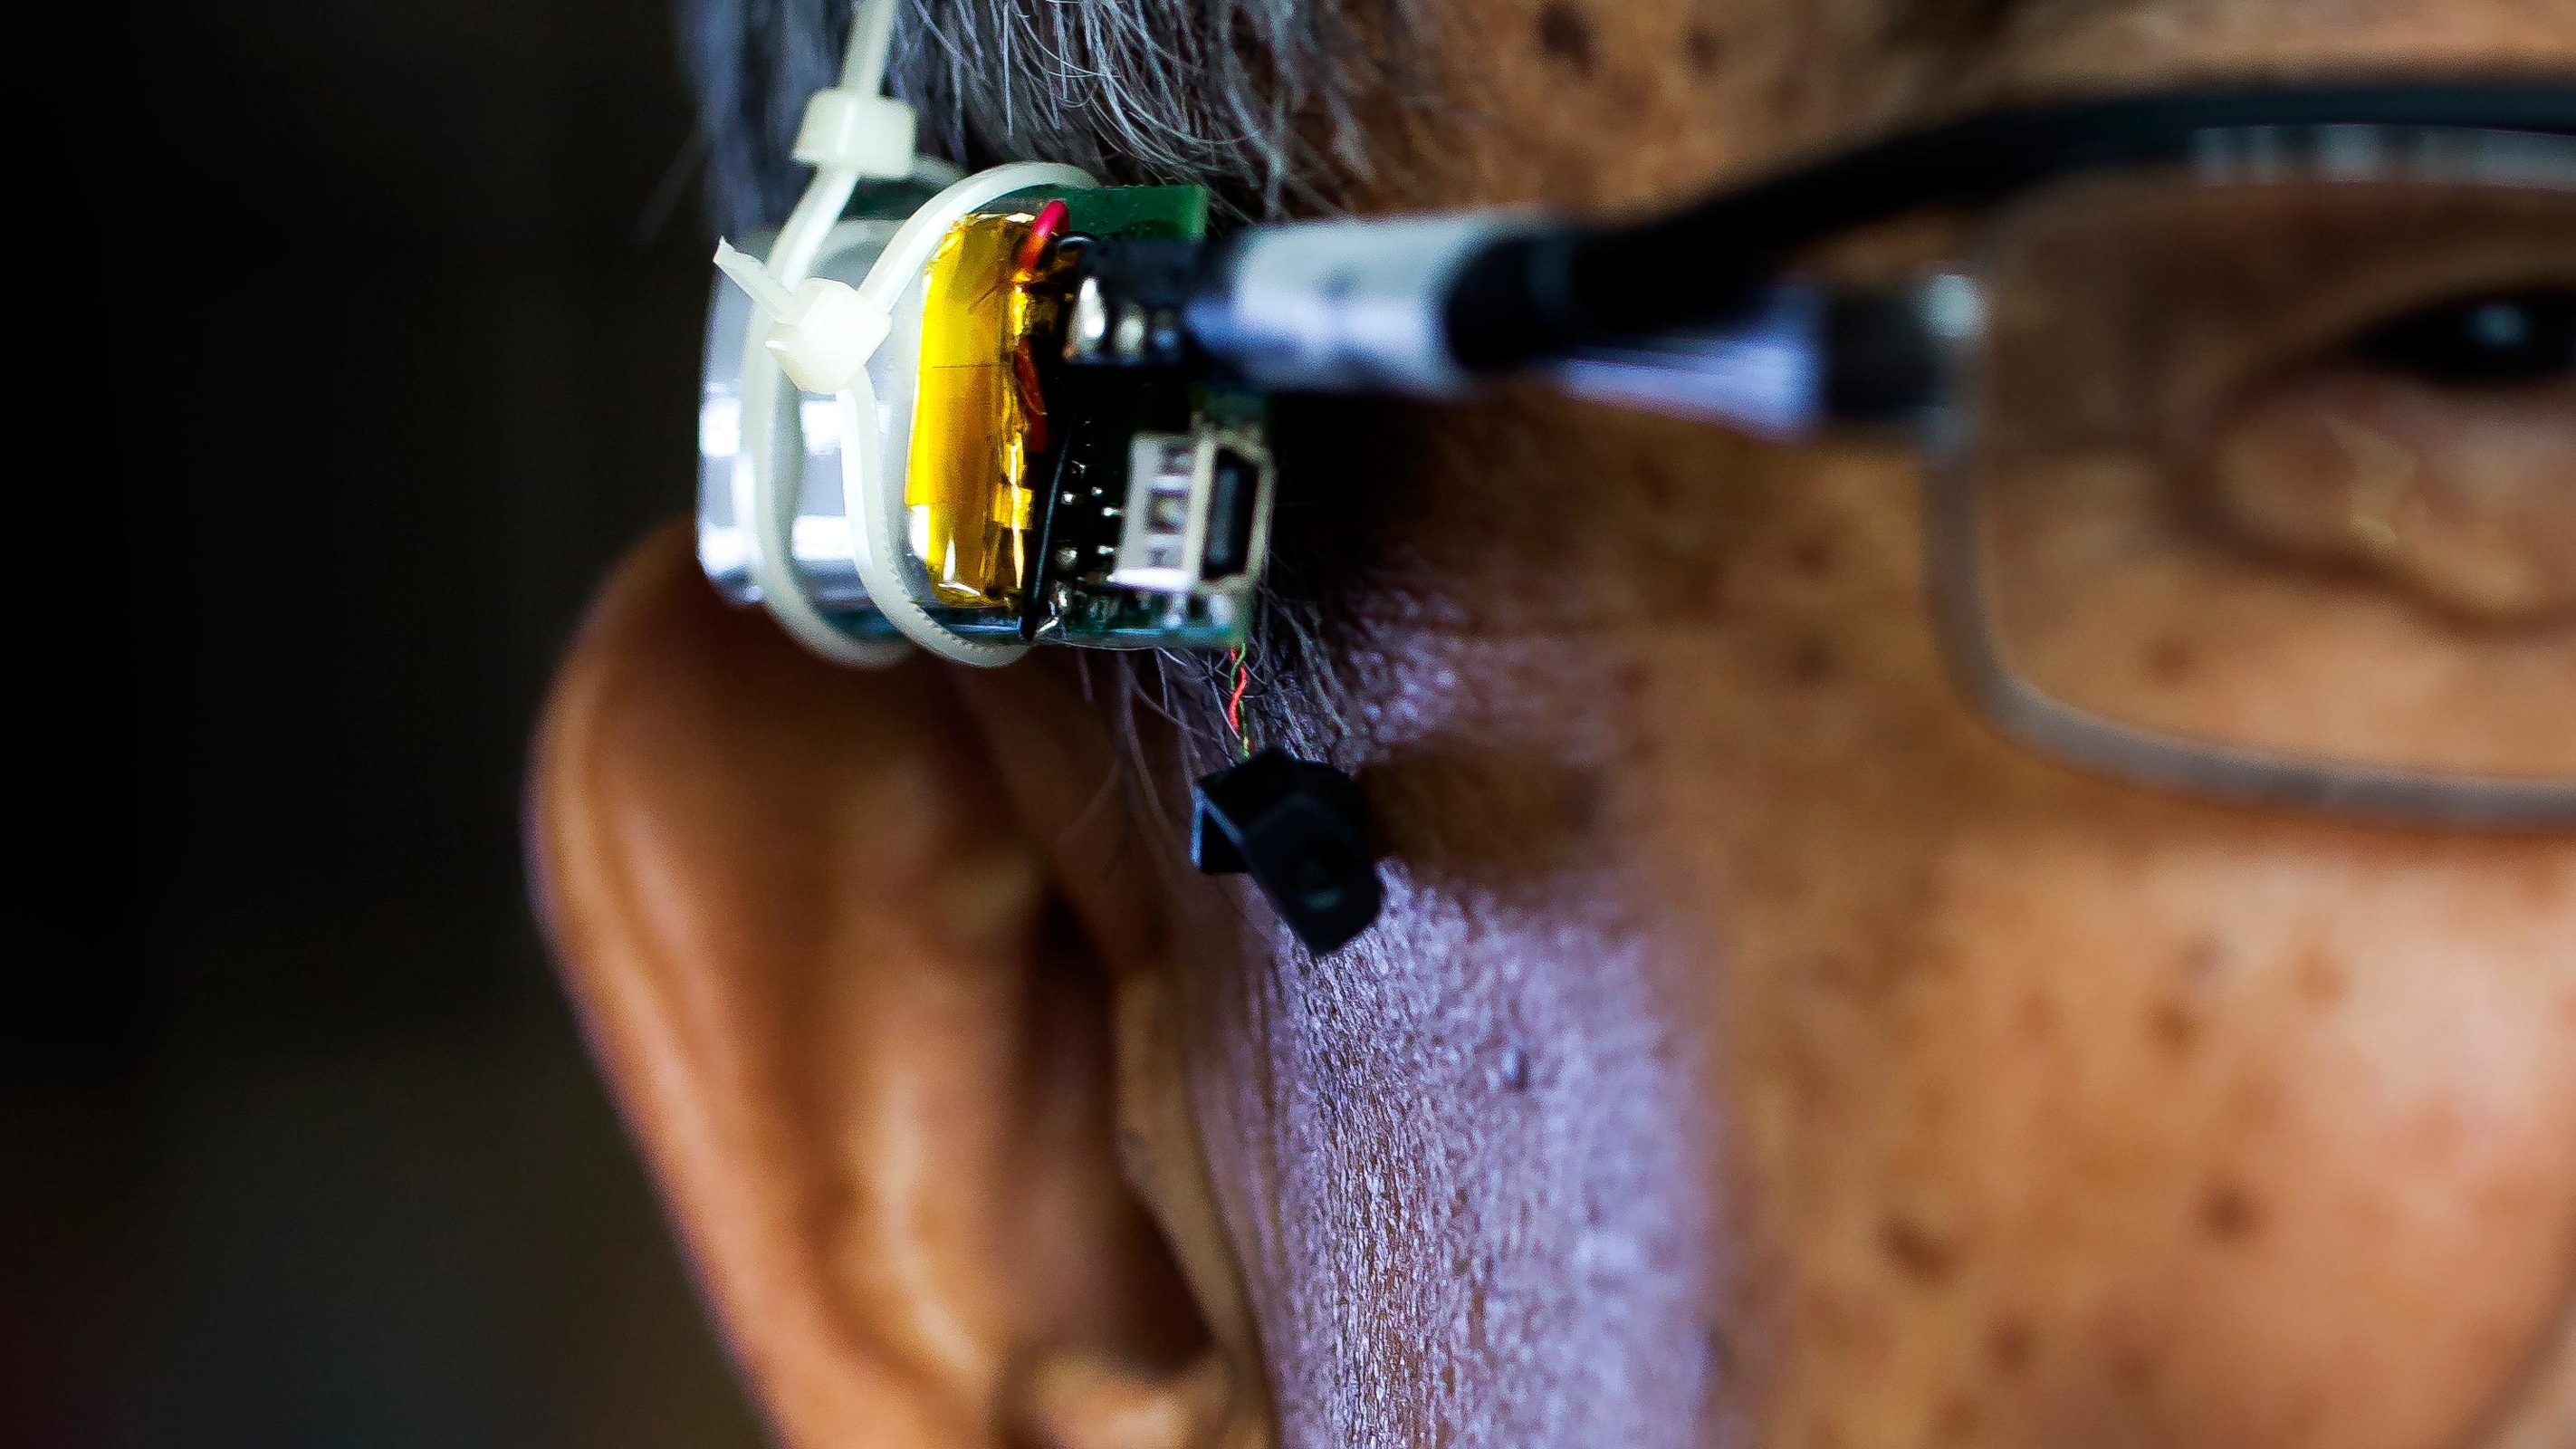 Wearables to boost security of voice-based log-in